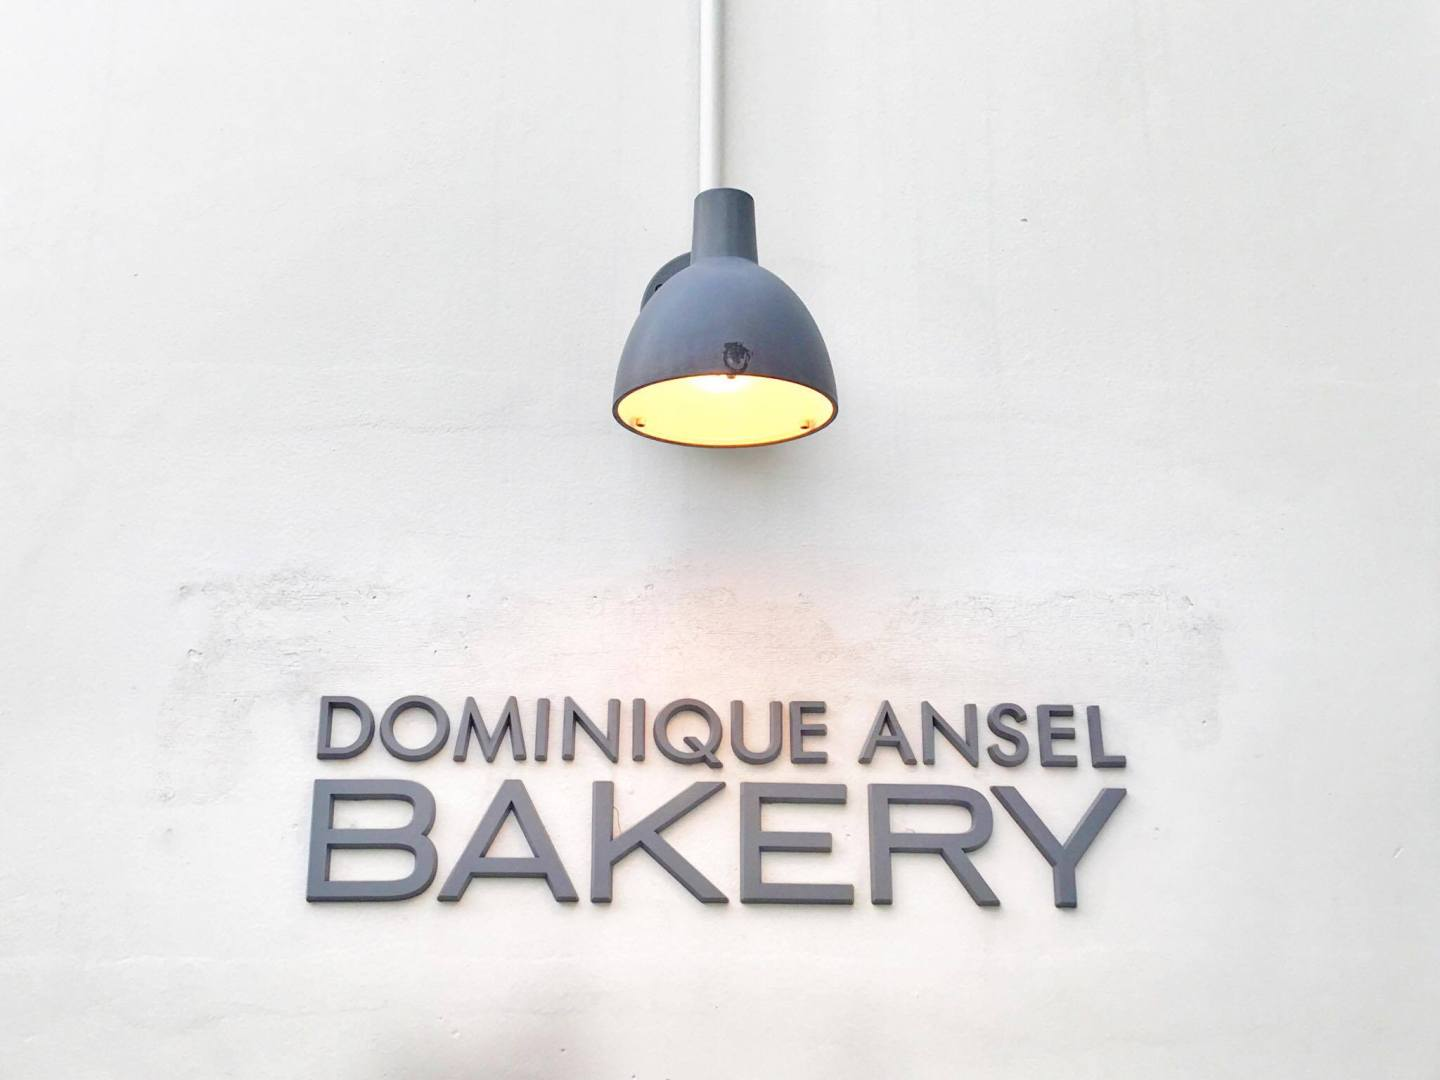 Dominique Ansel Bakery, Tokyo